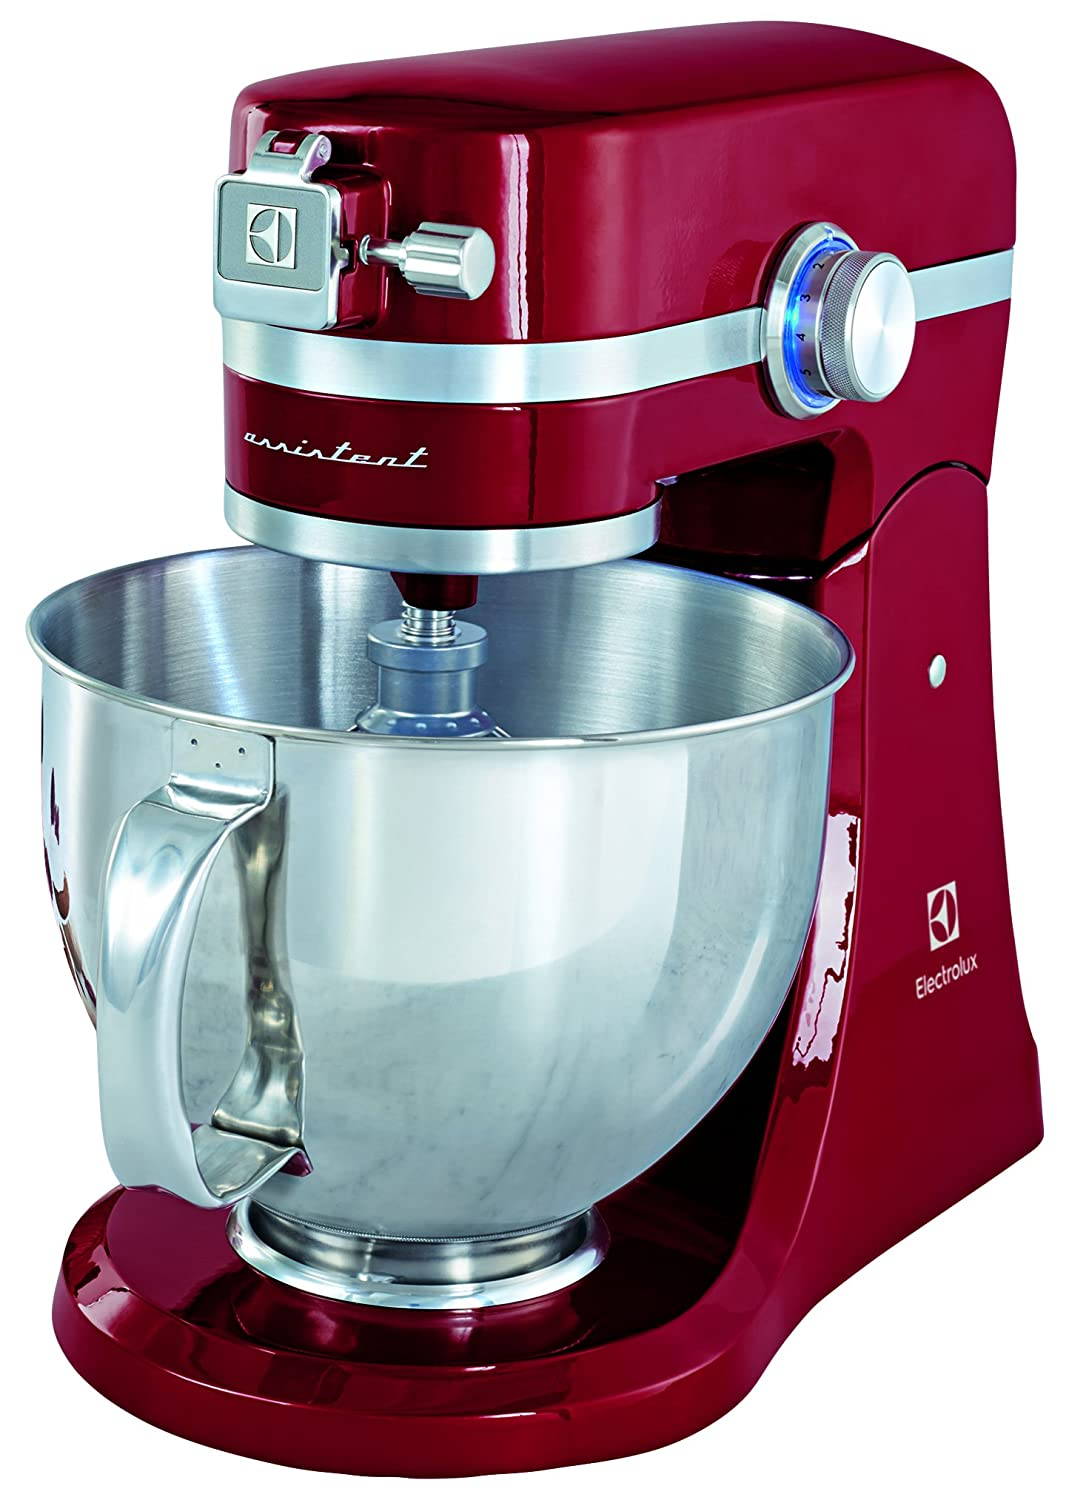 Electrolux EKM4000 food processor - food processors (Red, Stainless ...